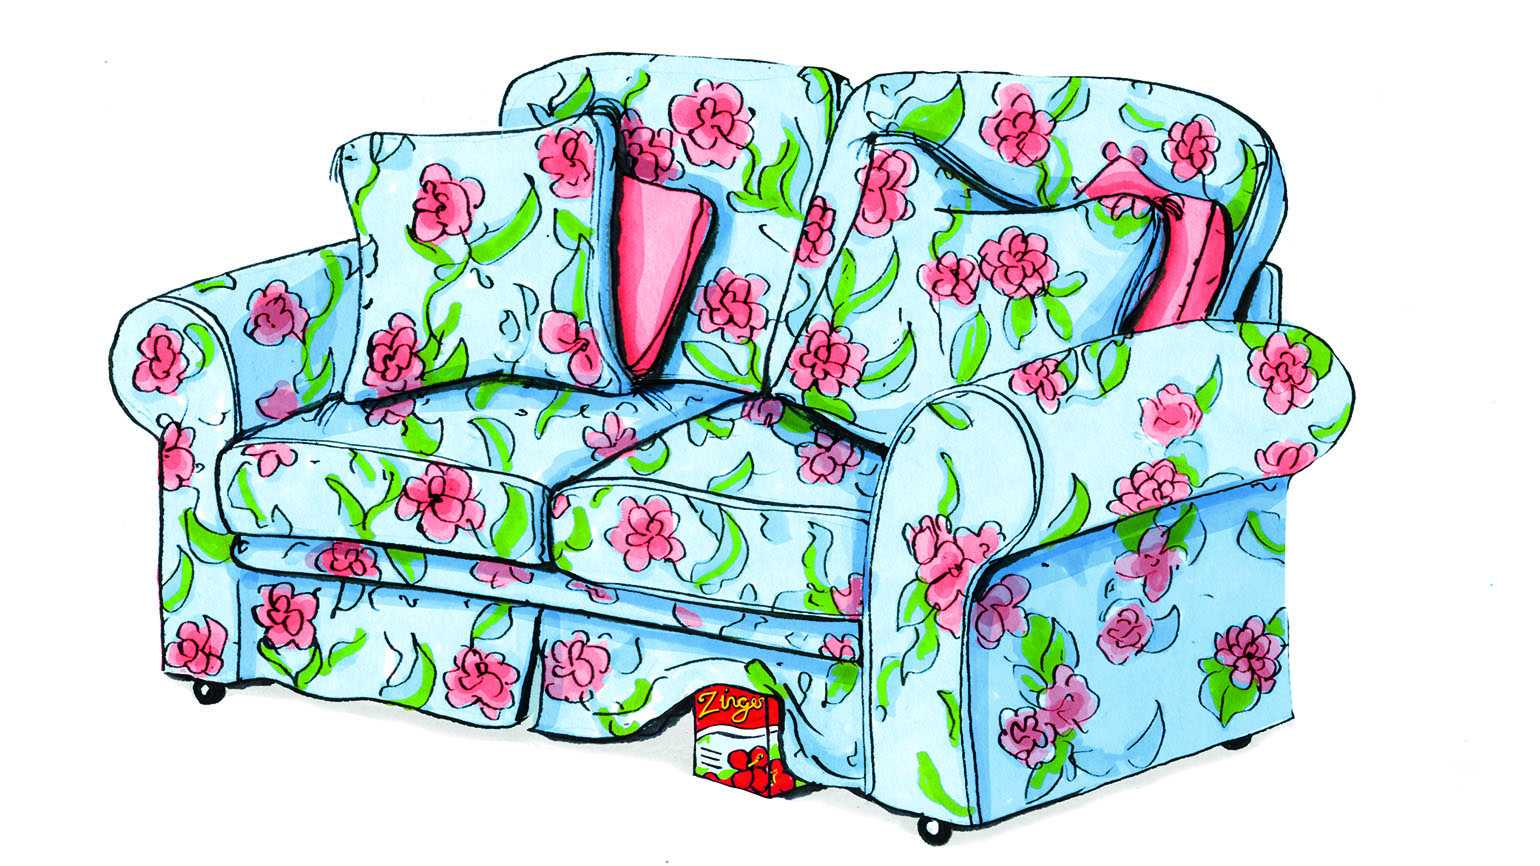 Illustration of a gift hidden under a couch